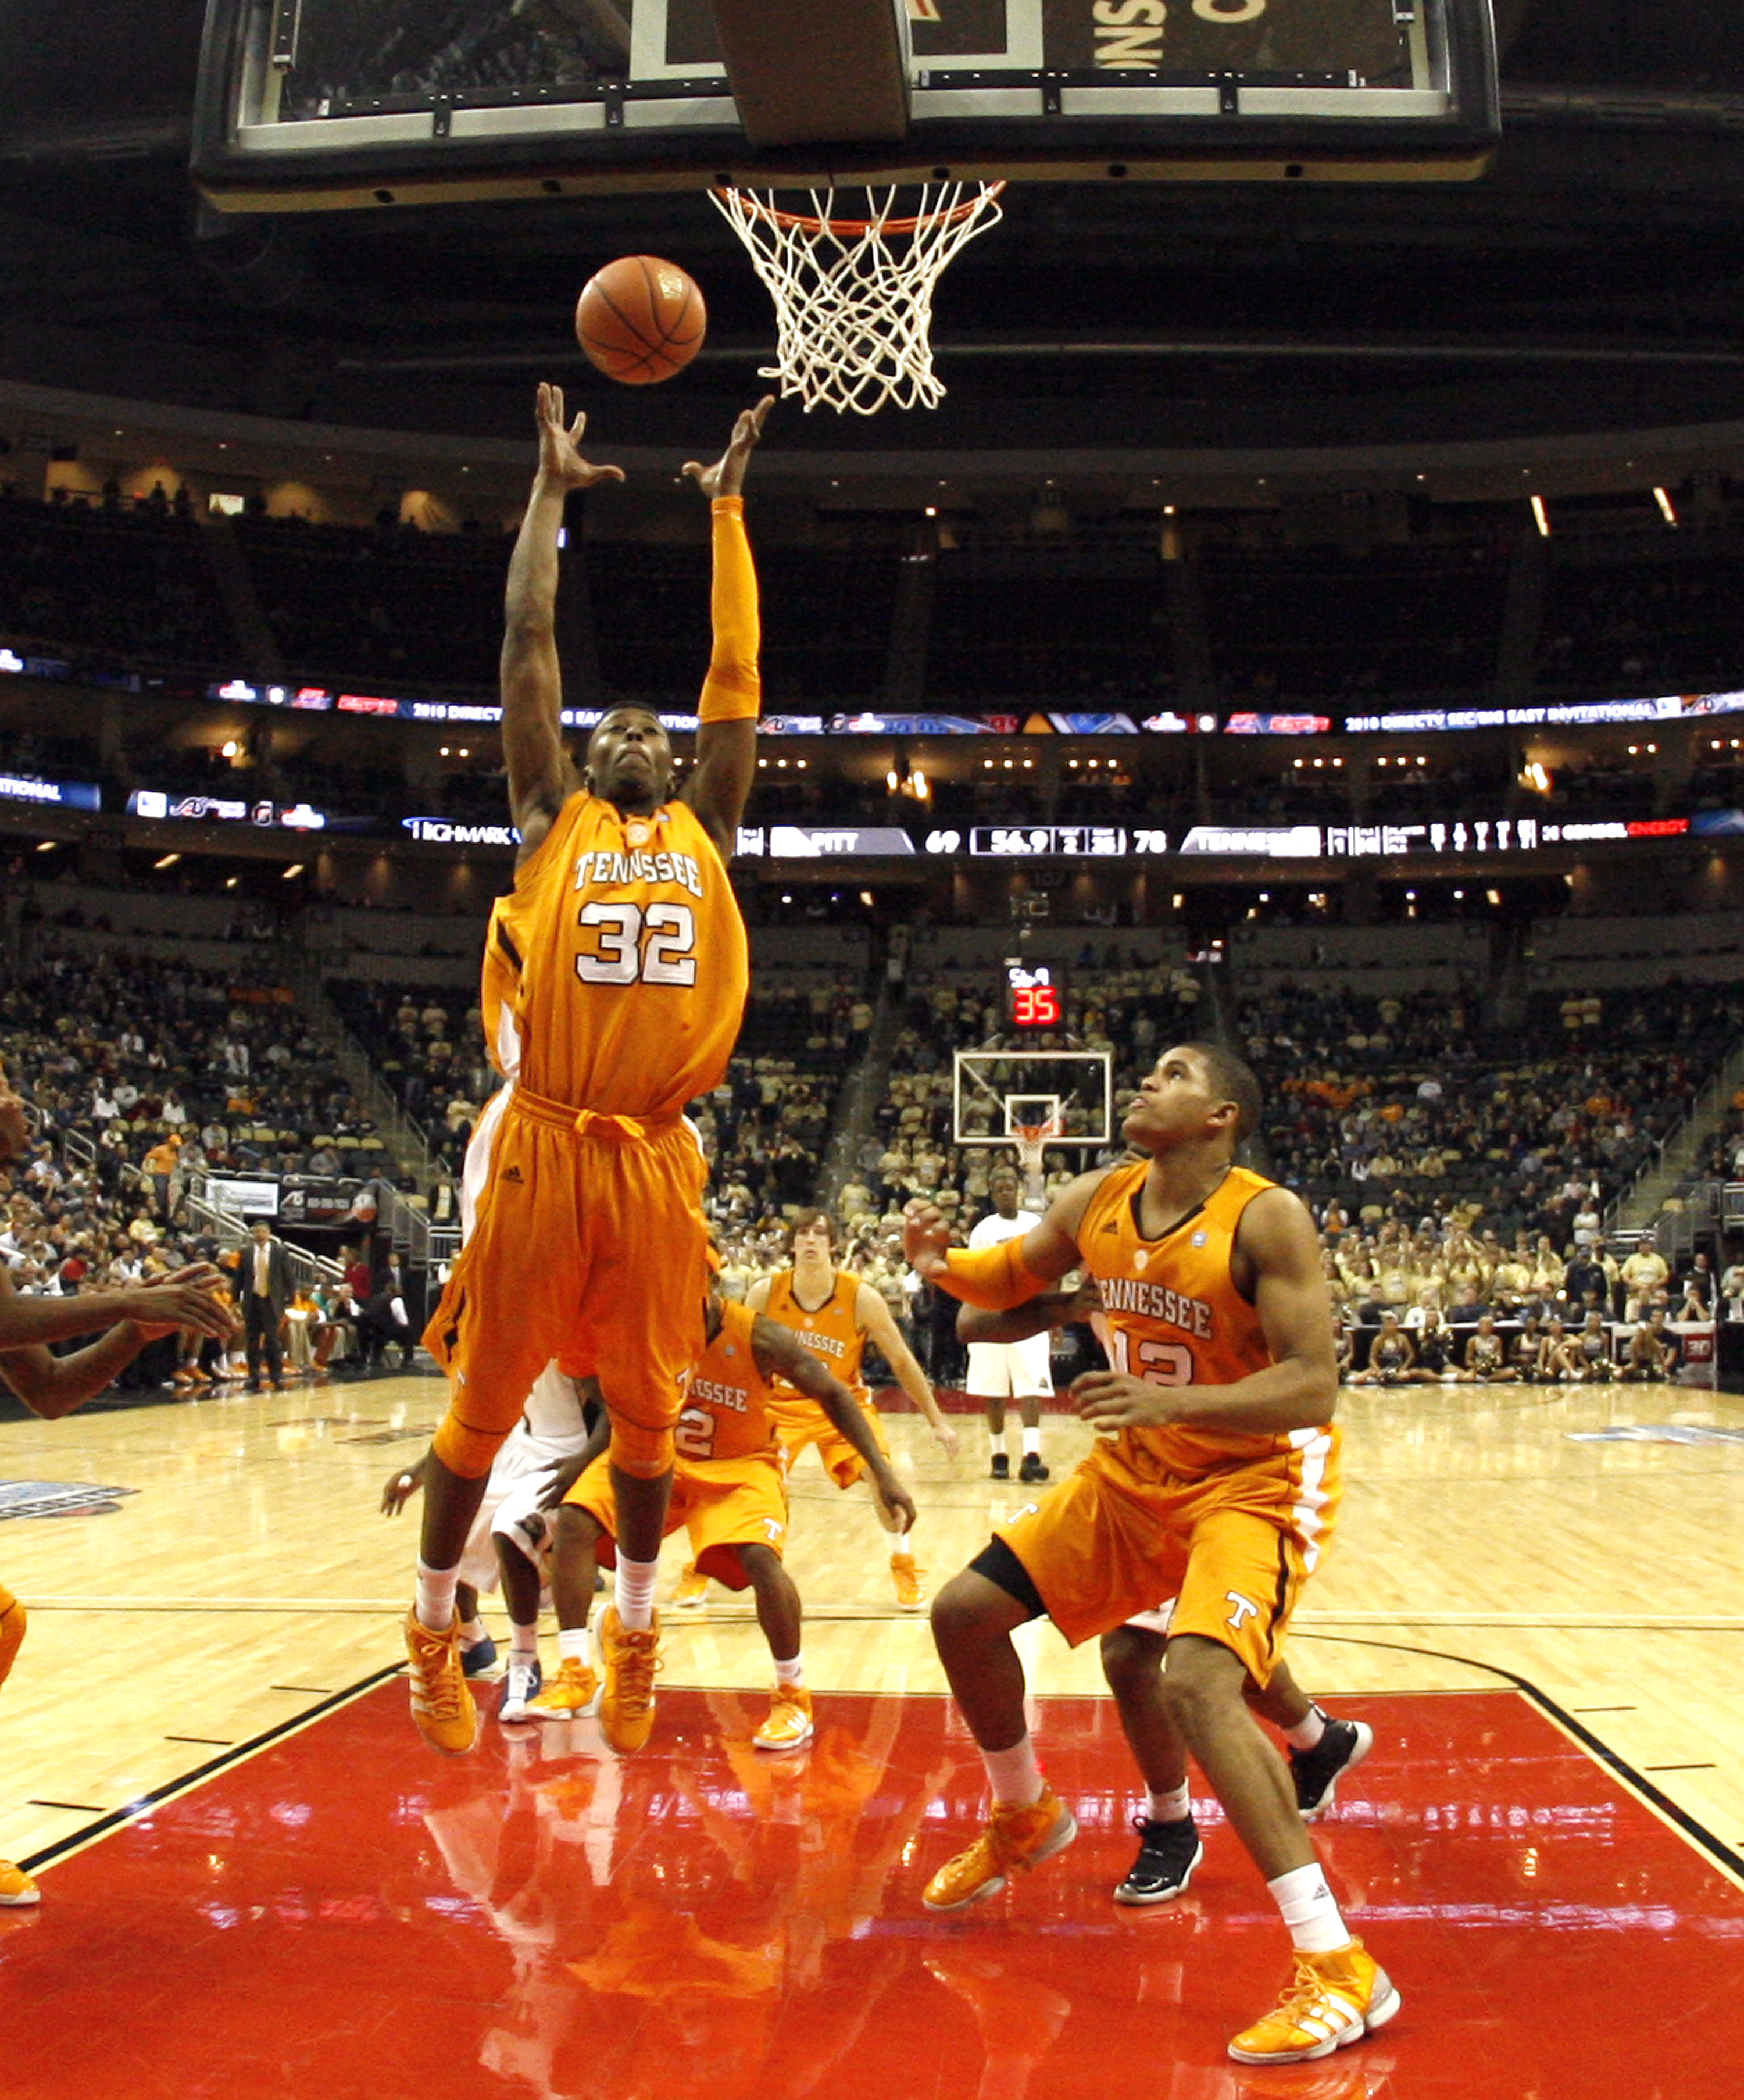 PITTSBURGH, PA - DECEMBER 11:  Scotty Hopson #32 of the Tennessee Volunteers pulls down a rebound against the Pittsburgh Panthers during the SEC/BIG EAST Invitational at Consol Energy Center on December 11, 2010 in Pittsburgh, Pennsylvania.The Volunteers